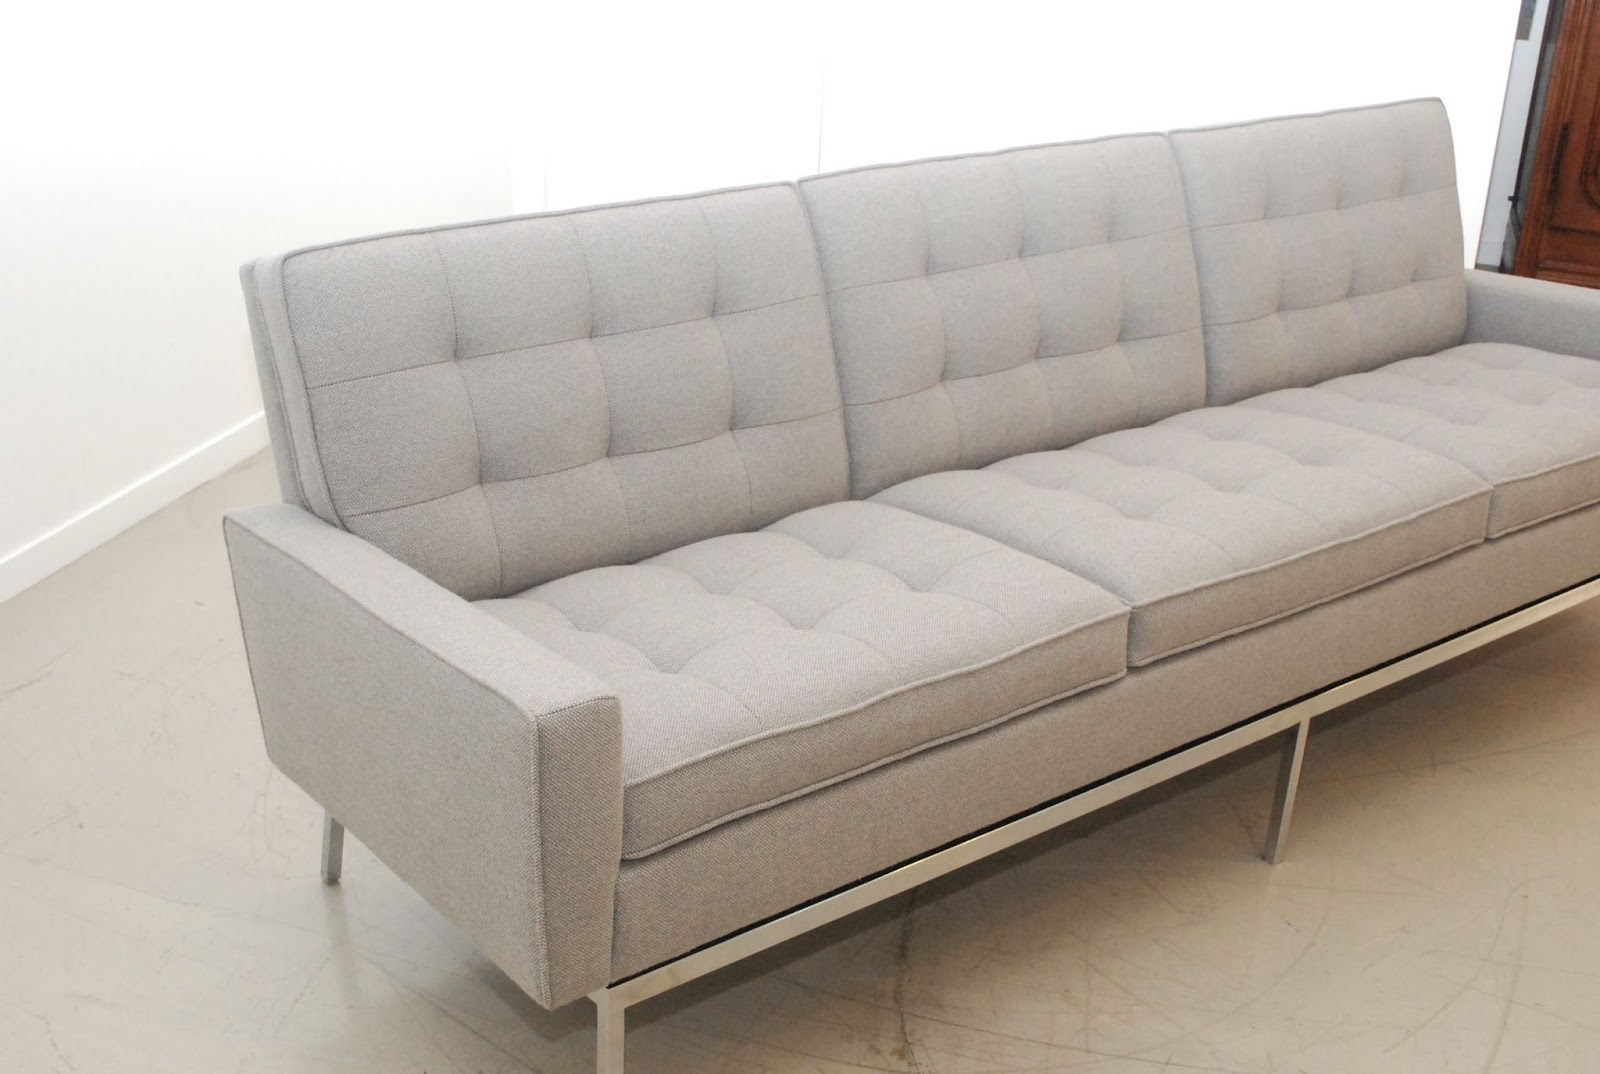 Clic Design Sofa Set In Toronto Knoll Vintage Retro Daybed By Wilhelm